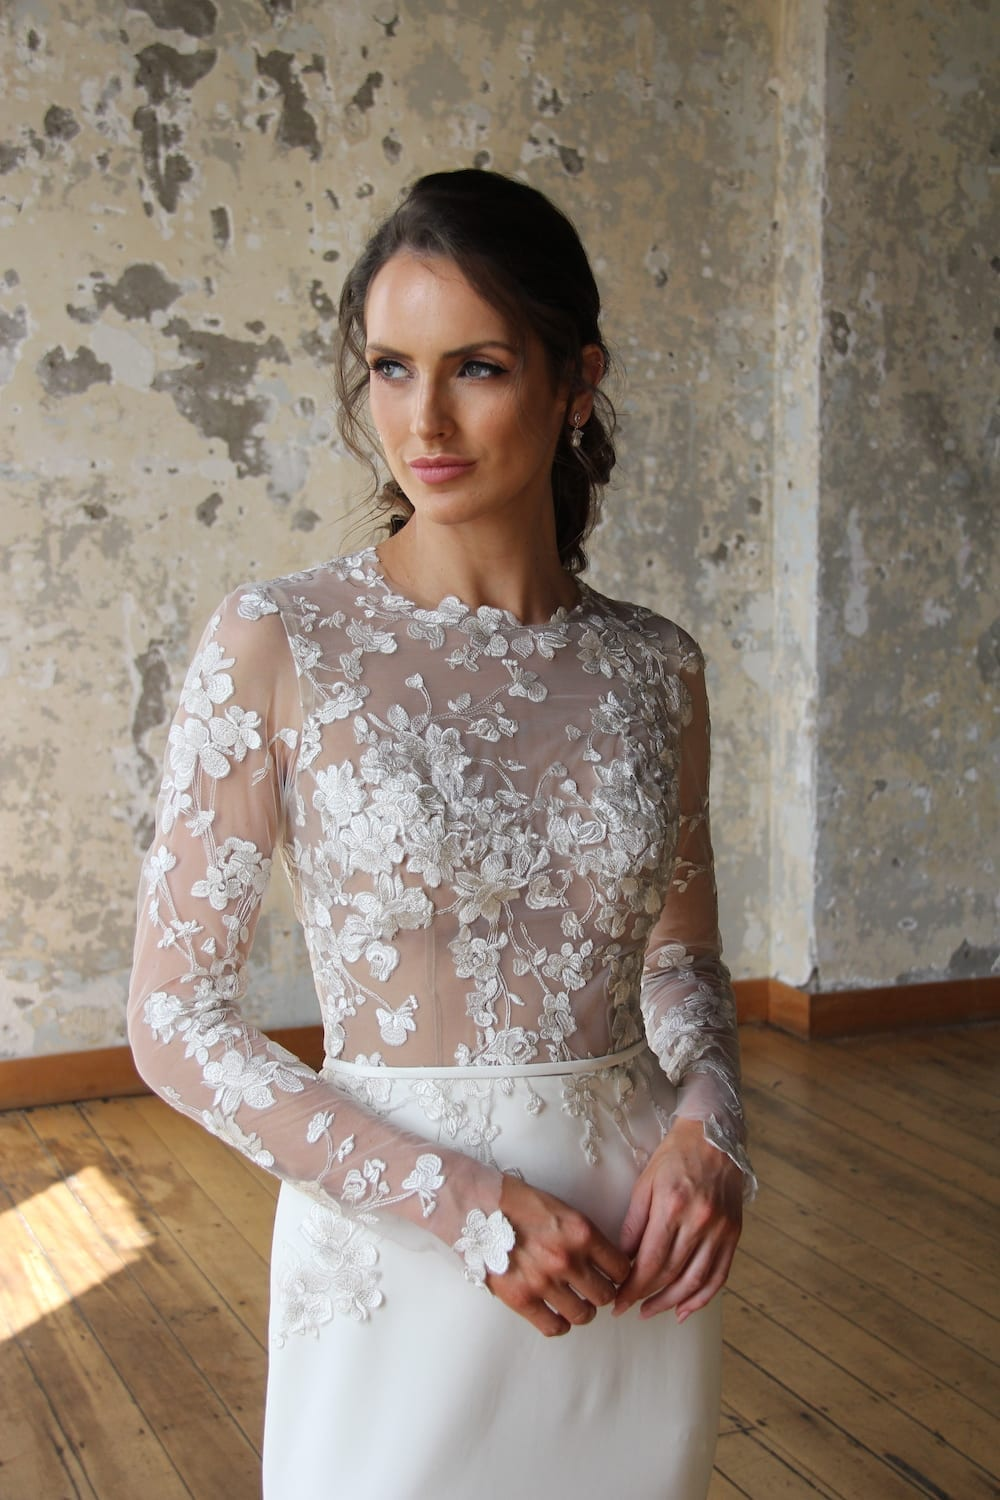 Female model wearing Vinka Design Modern Muse Wedding Dress. In chic warehouse the front detail of a gown with Long slender lace sleeves and a high neck subtle silver thread mixed in with ivory tones down into the stretch skirt.